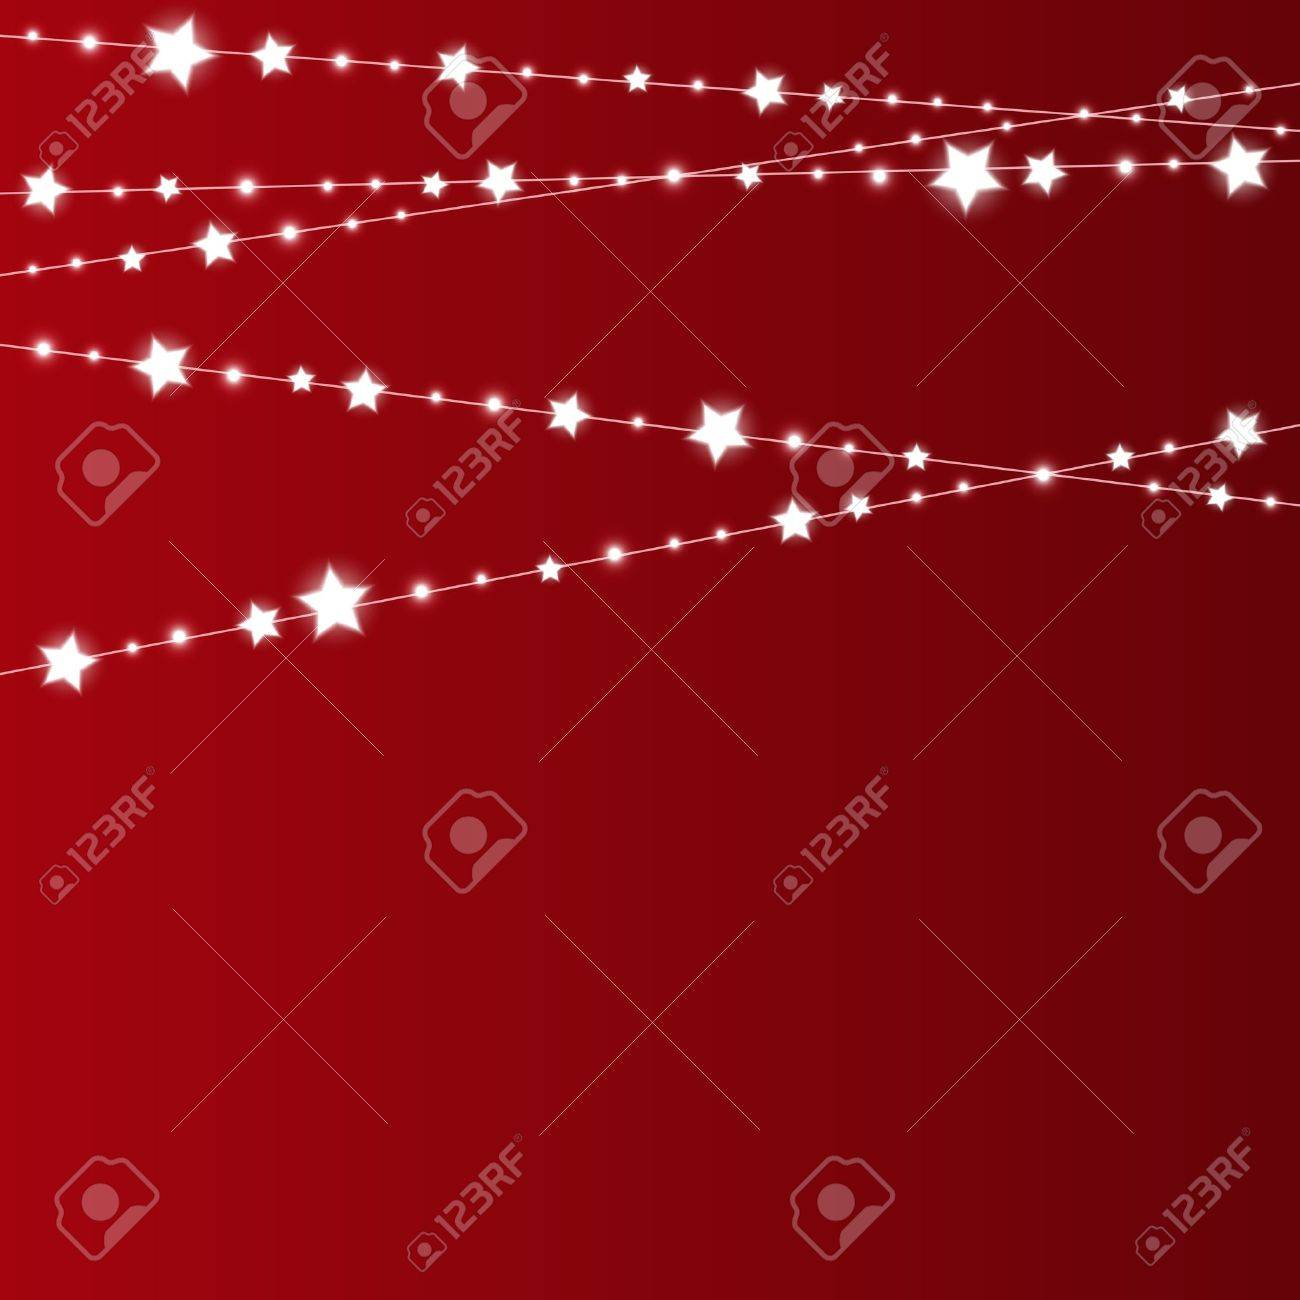 Starry Christmas background with place for text Stock Vector - 16686233